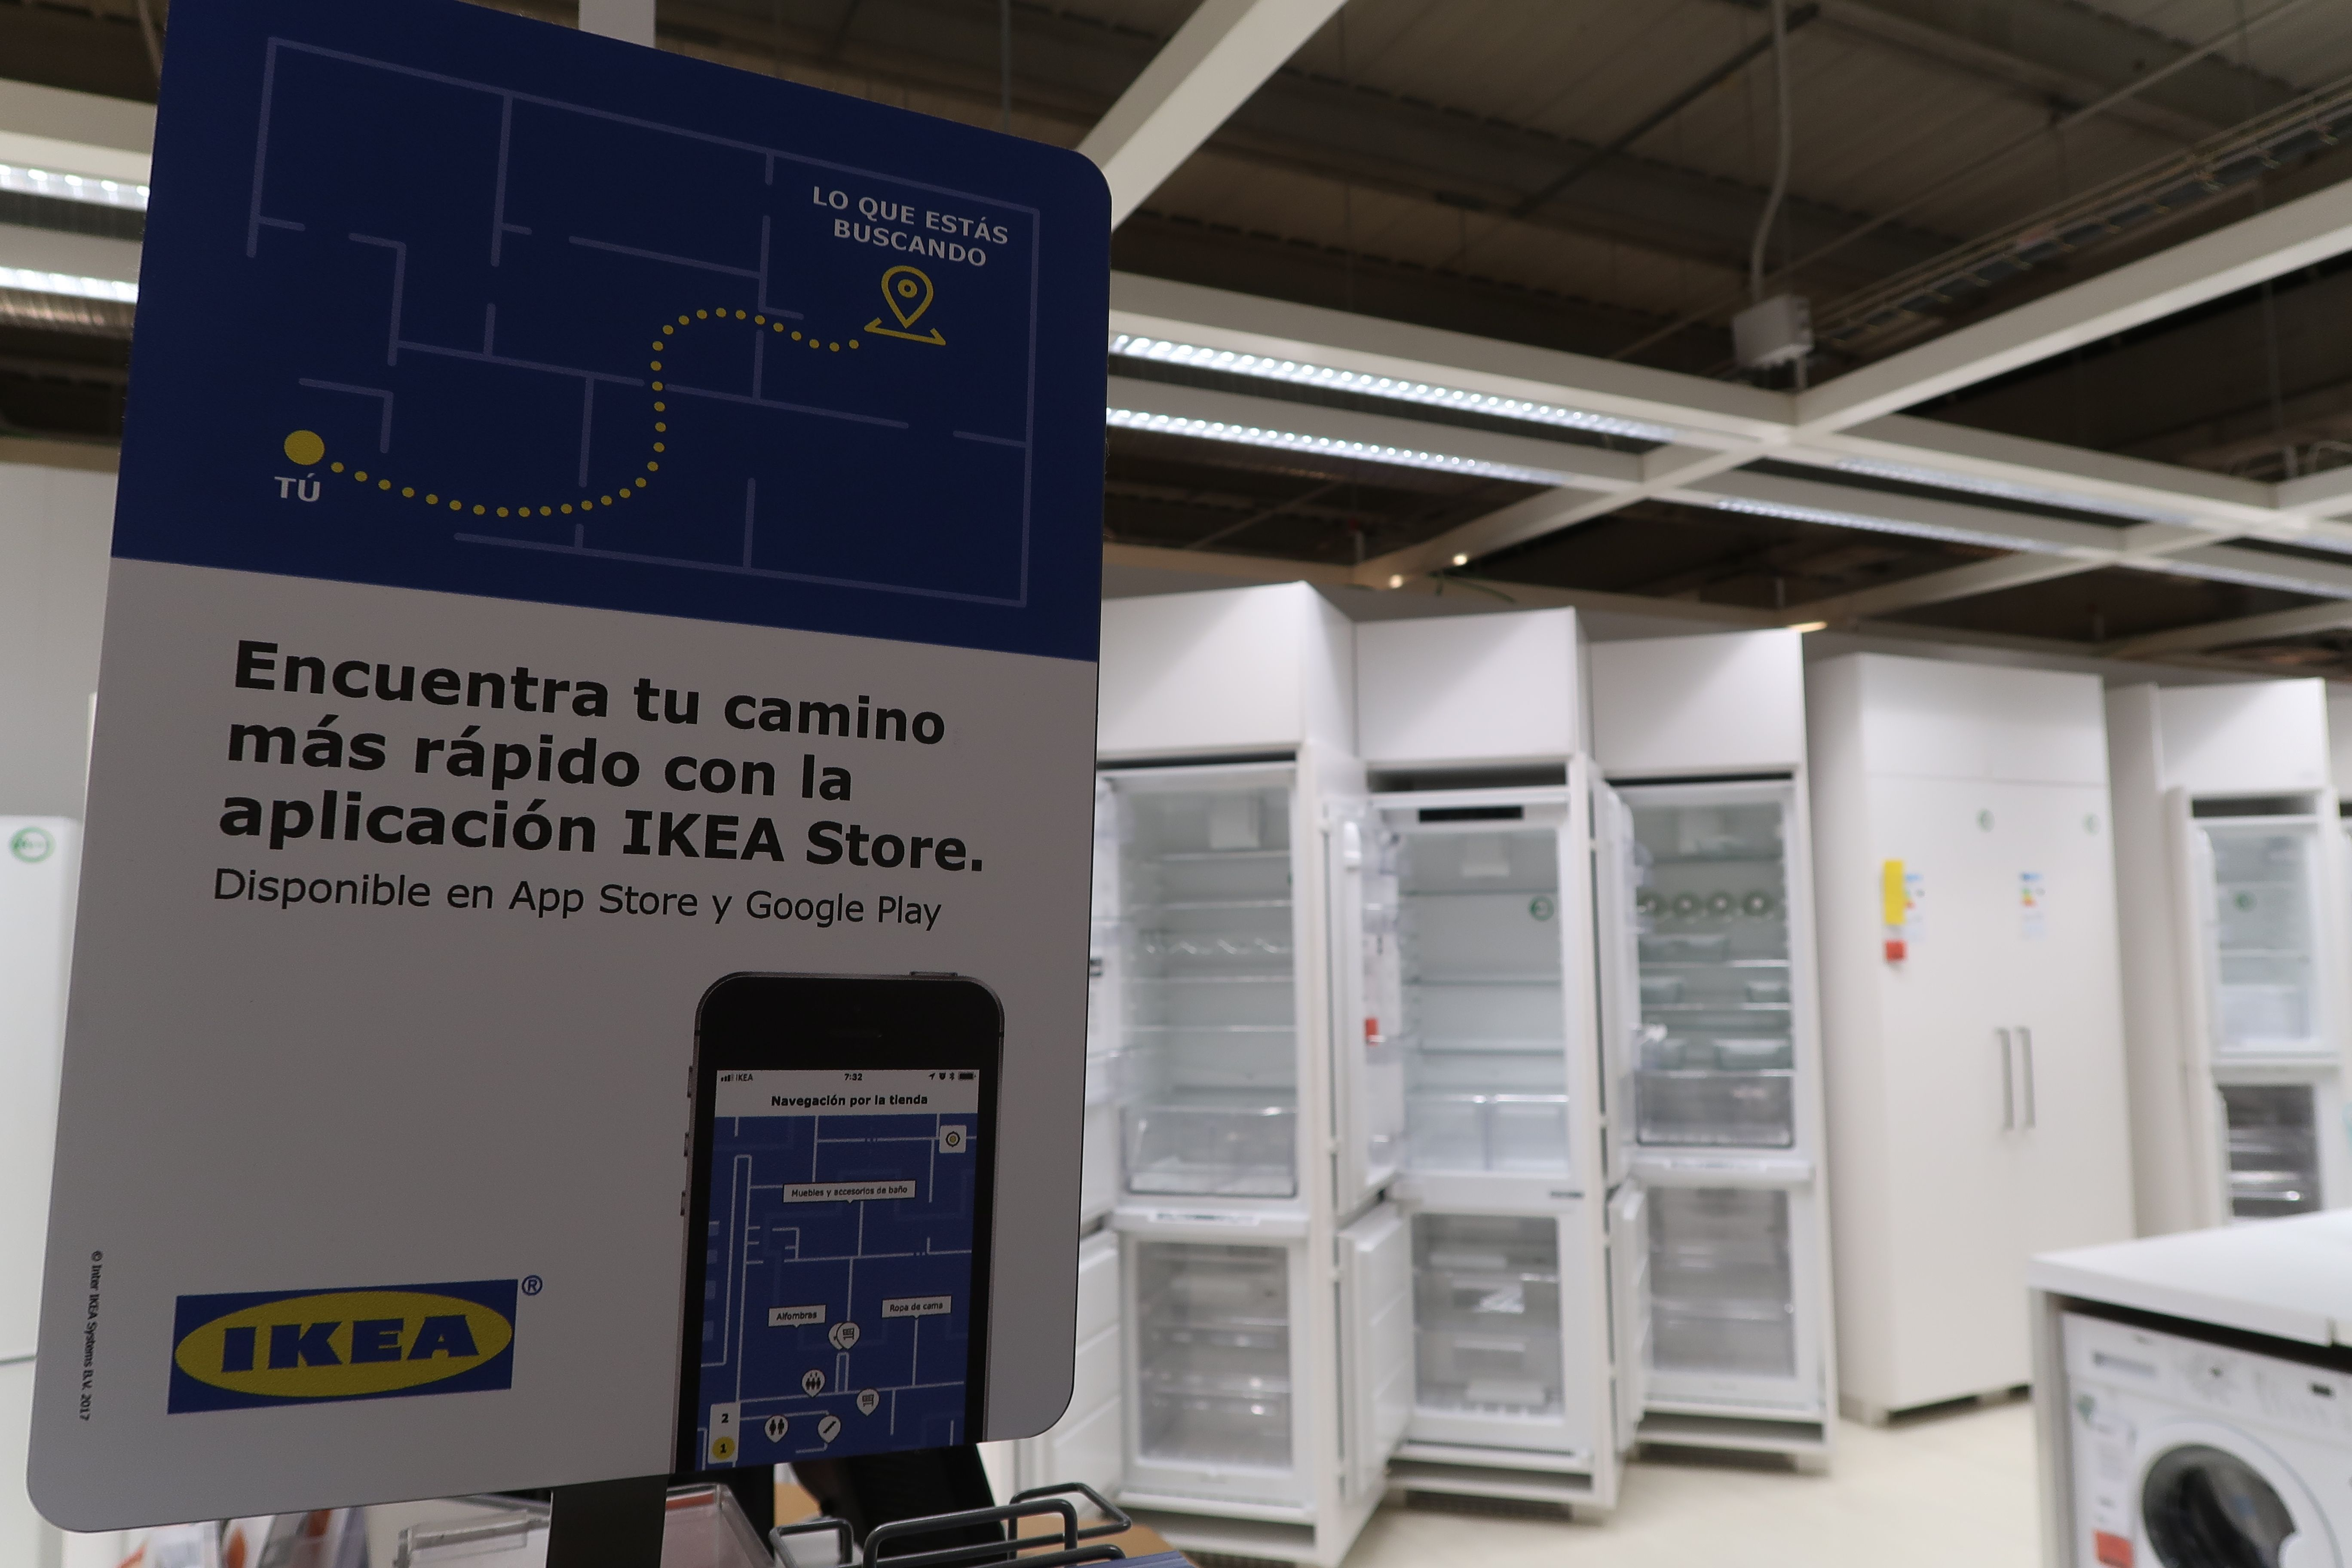 Ikea Mobile Omnichannel MHE 2018